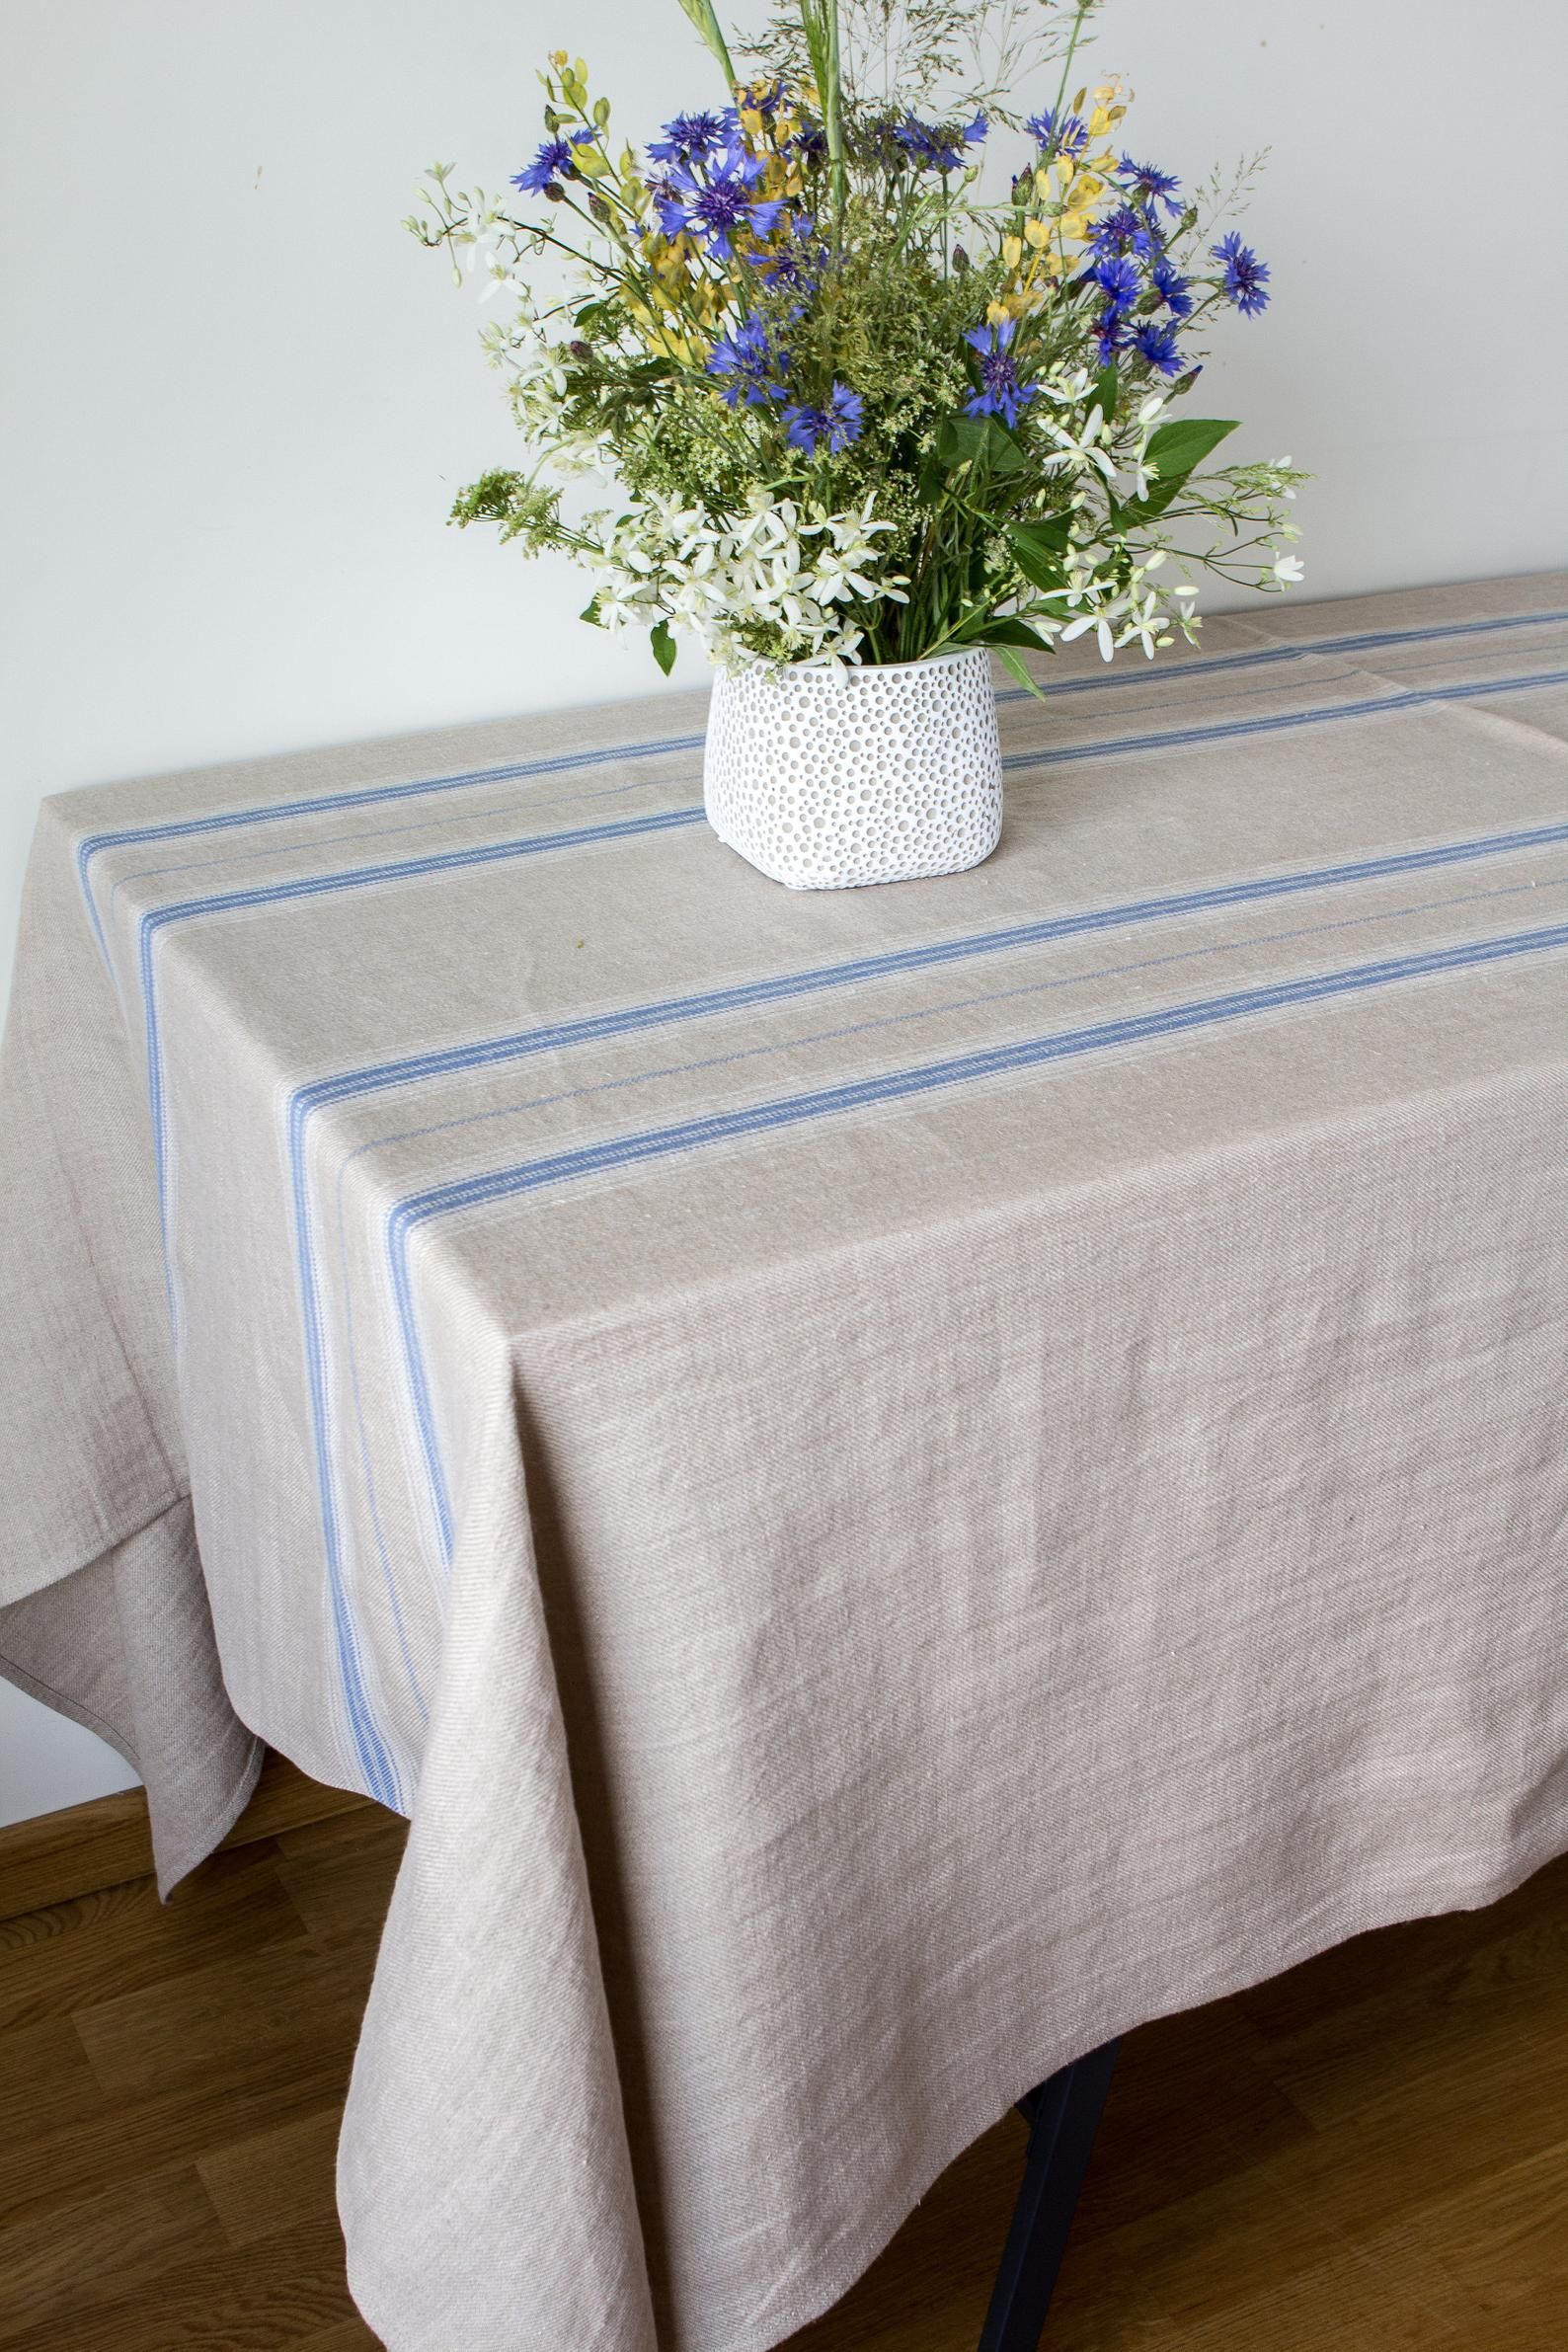 The Natural Elegance Of Pure Linen Is Timeless Treat Your Table To Such Elegant Farmhouse Style Thin B Farmhouse Tablecloths Custom Table Cloth Custom Table